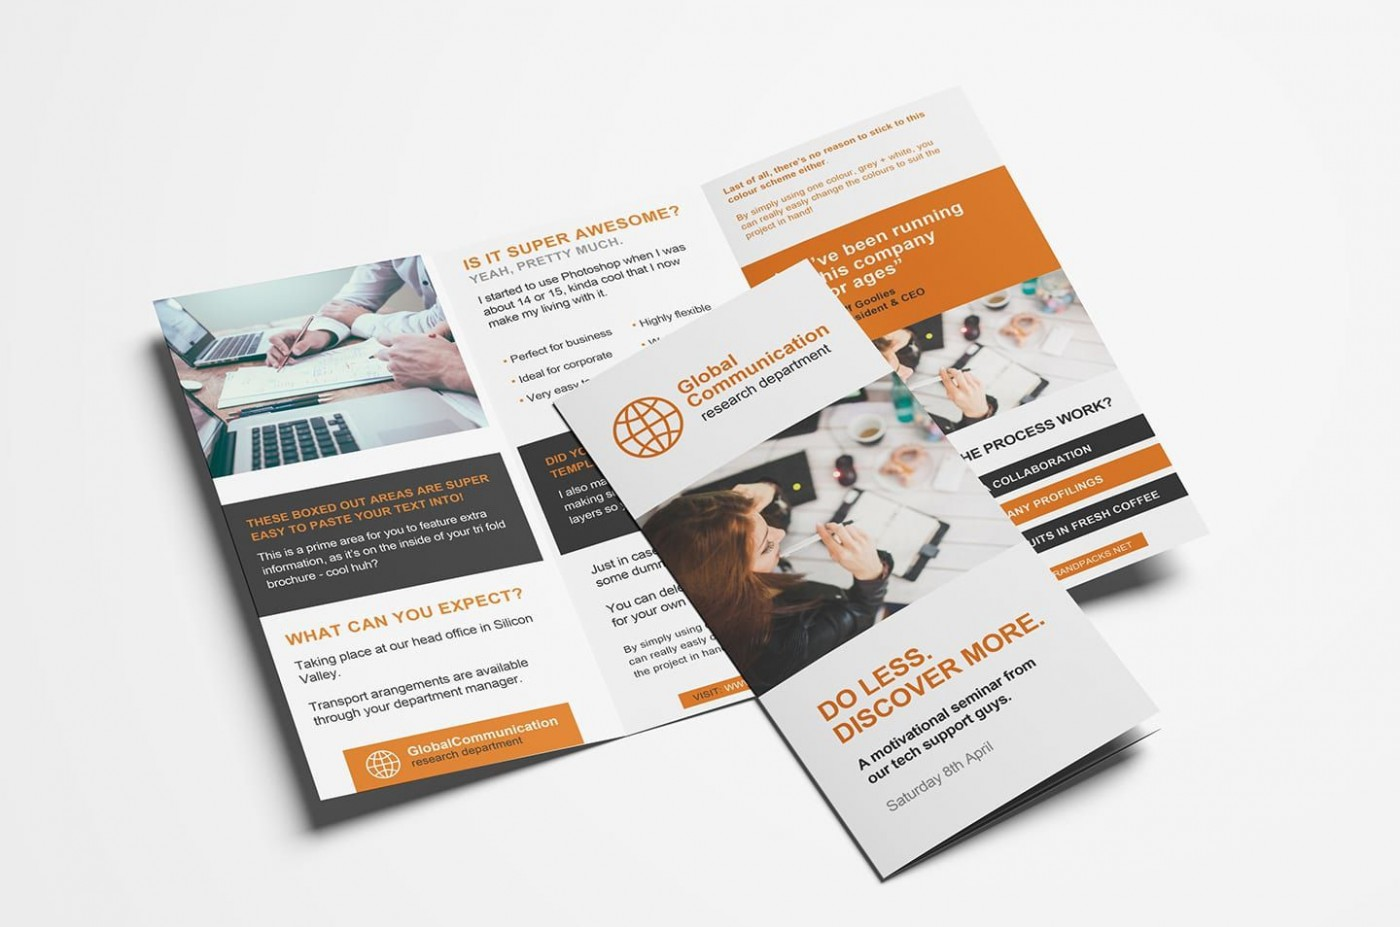 003 Magnificent 3 Fold Brochure Template High Def  For Free1400